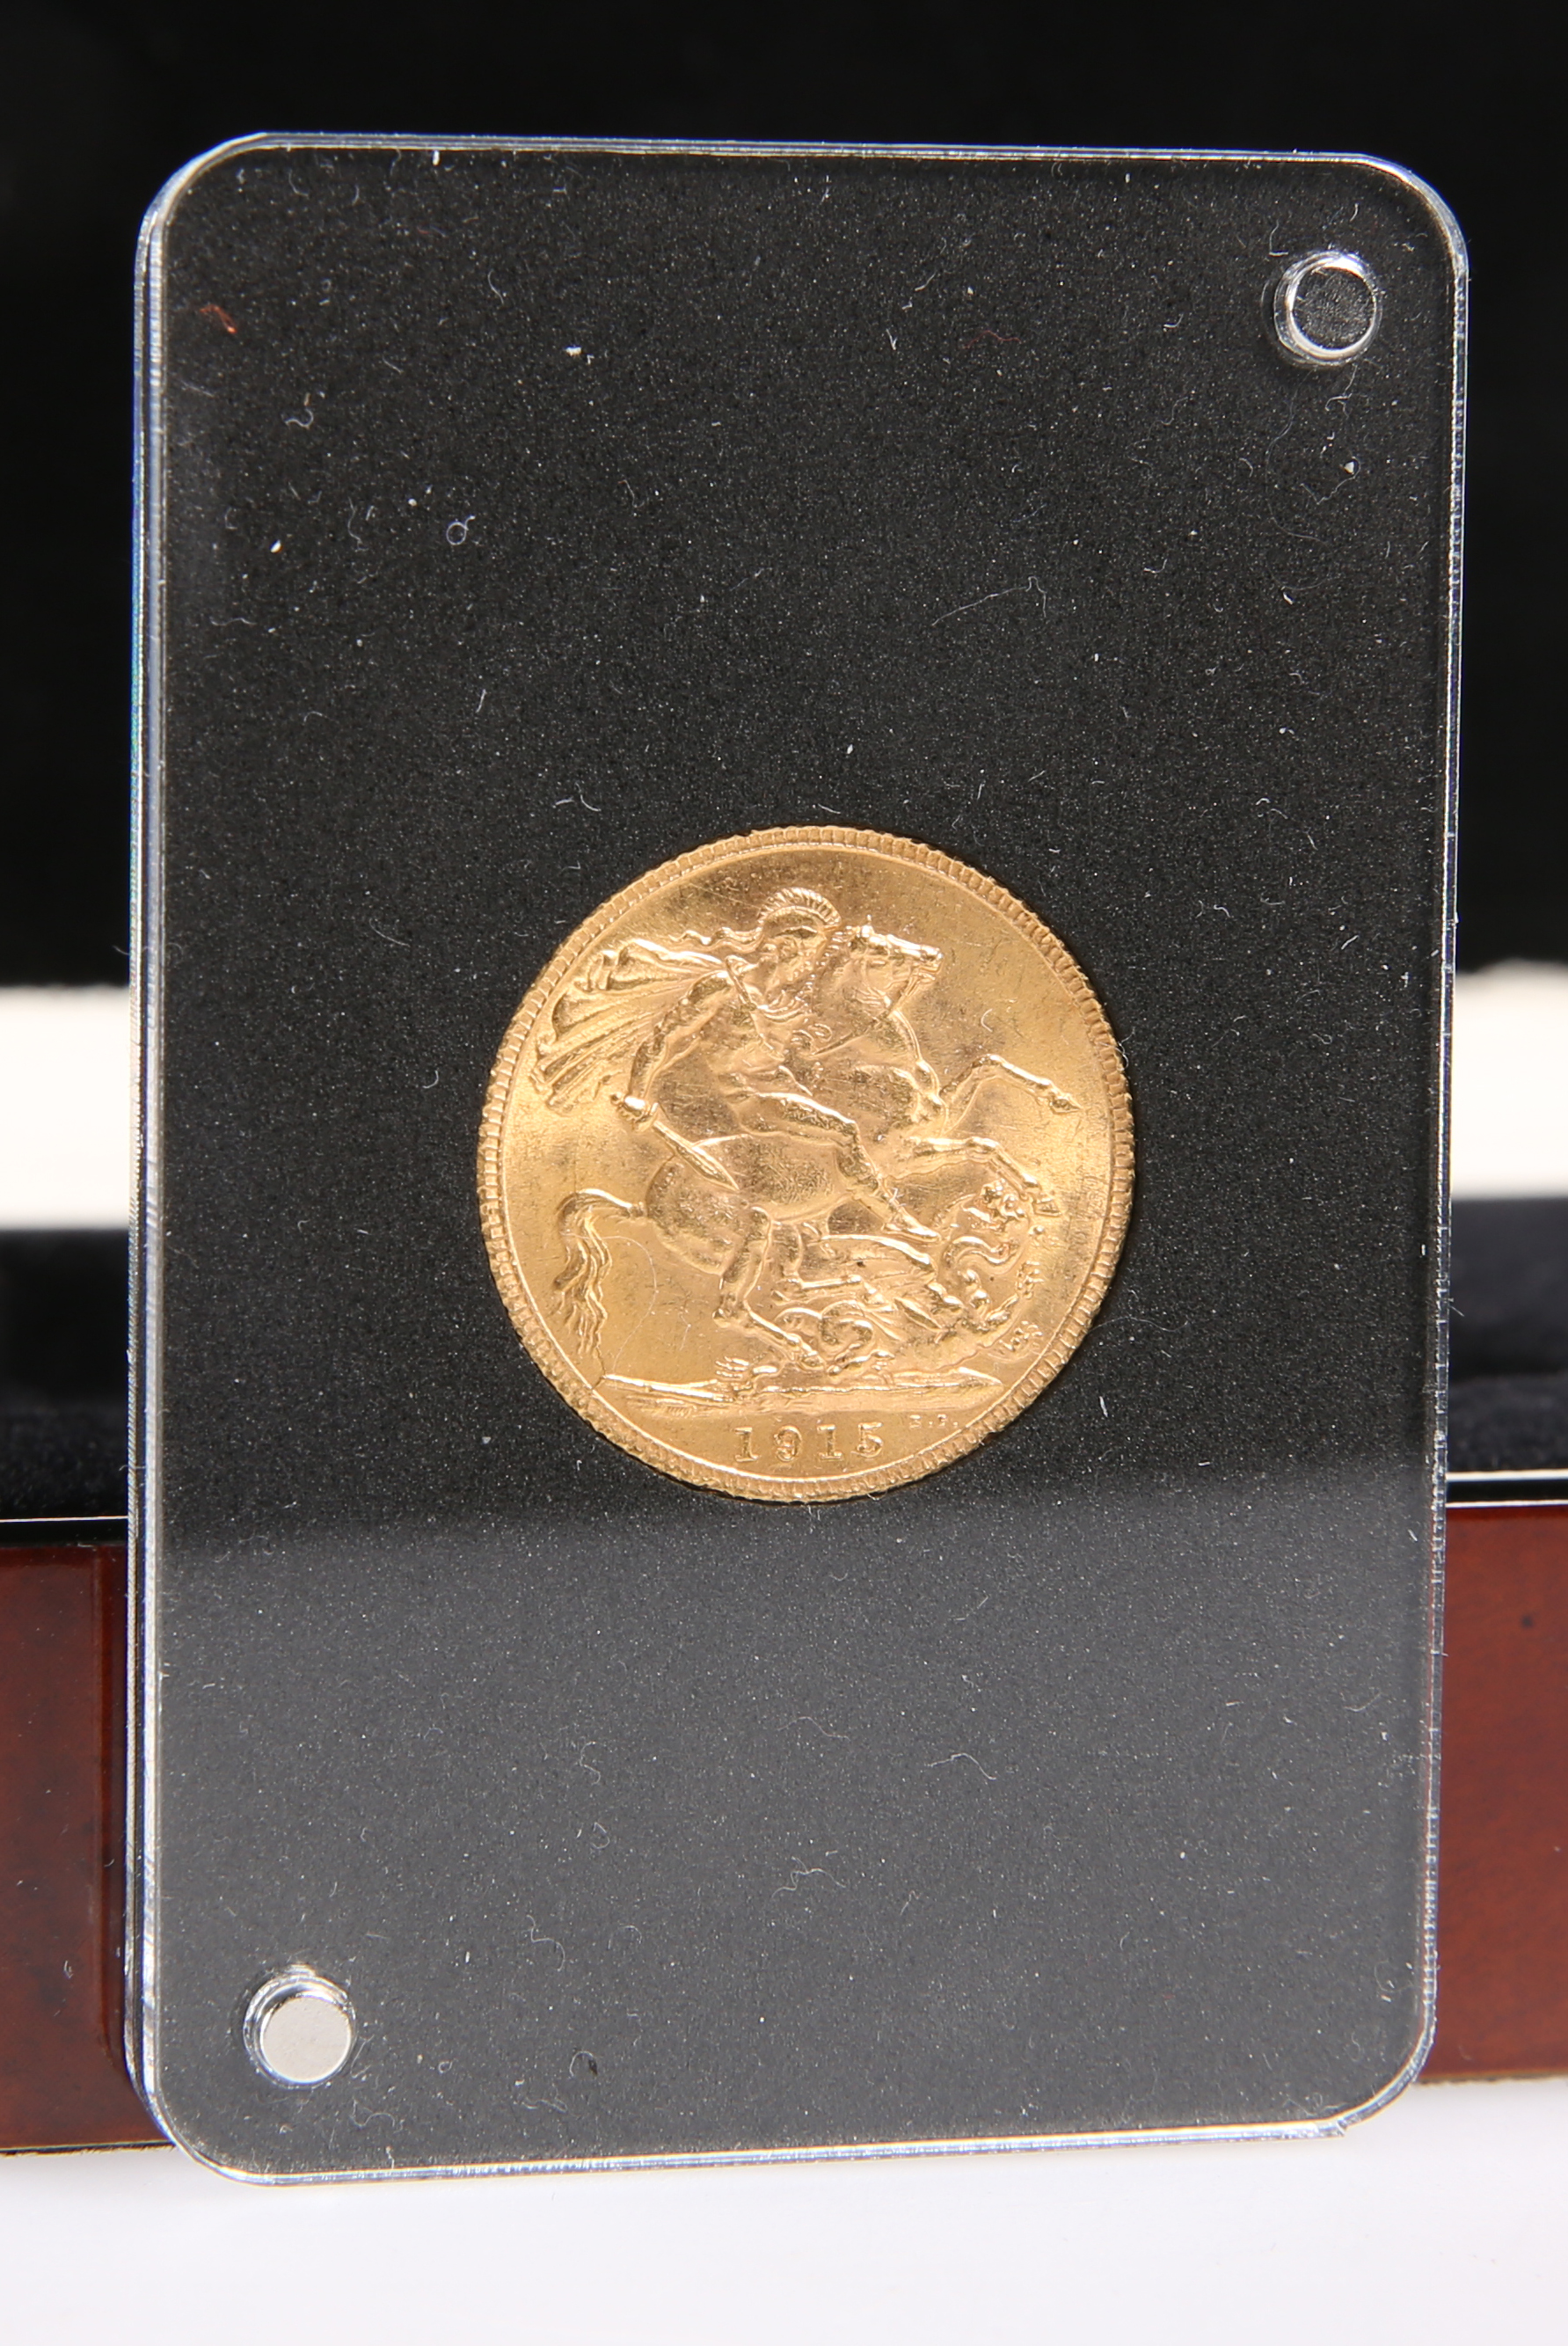 A GEORGE V 1915 FULL SOVEREIGN, cased and boxed.